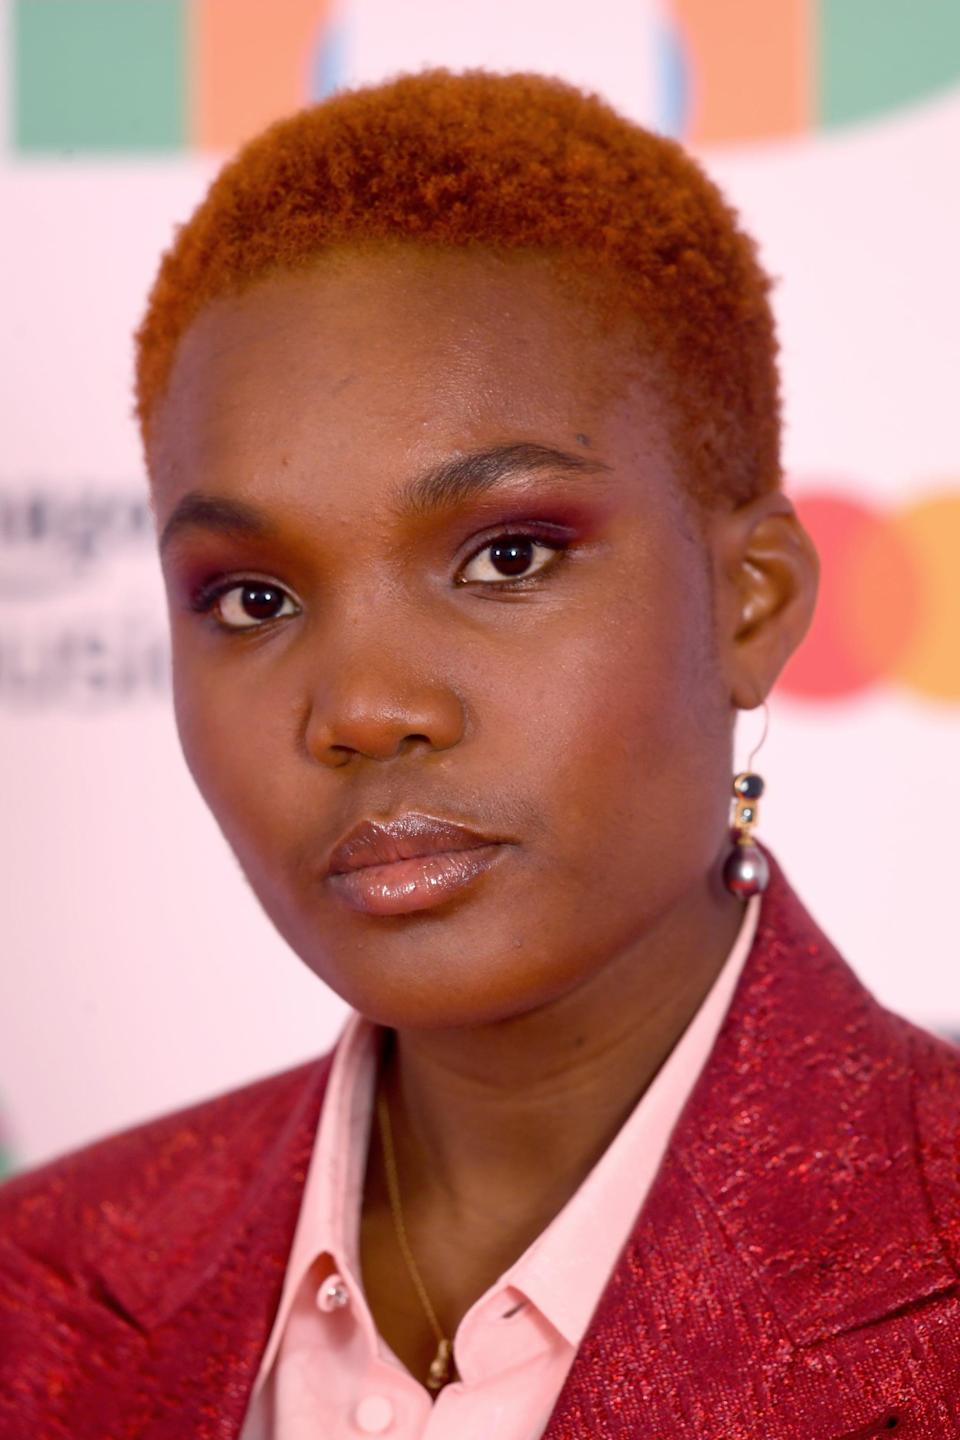 <p>Parks paired her signature short crop with a gorgeous reddish-purple eyeshadow and beautiful glowing skin.</p>